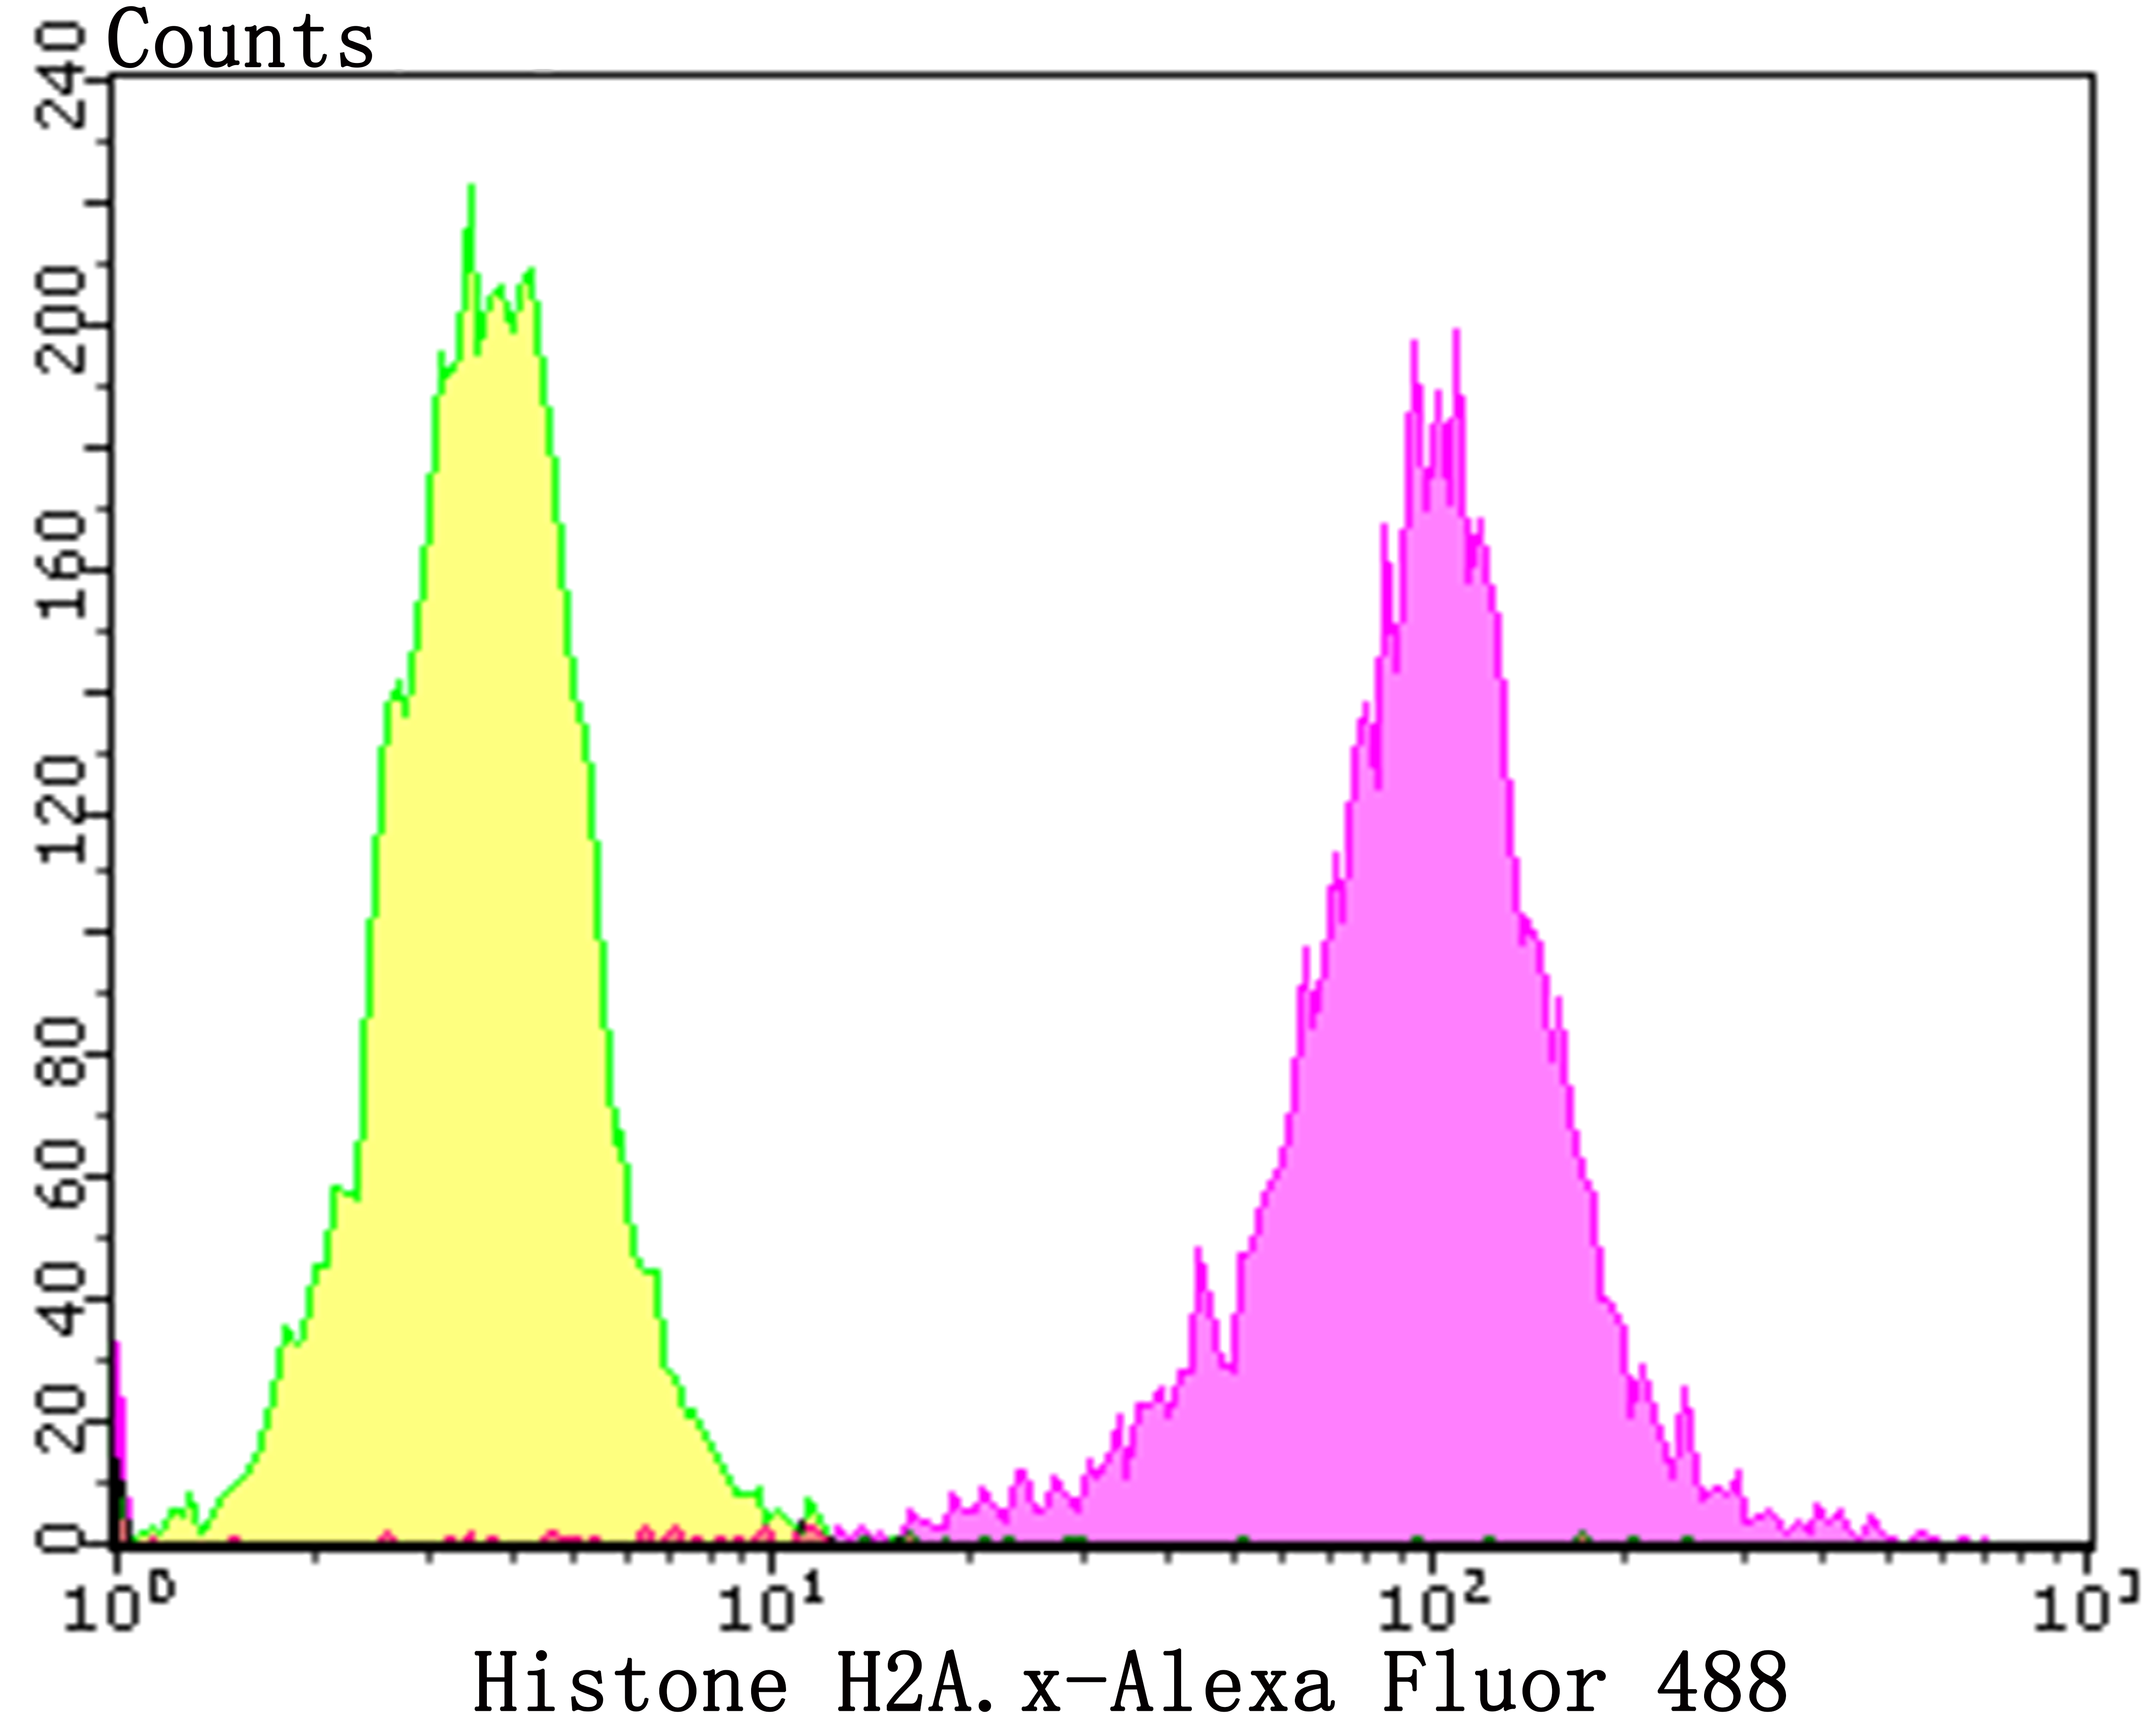 Flow cytometric analysis of Histone H2A.x was done on SHSY5Y cells. The cells were fixed, permeabilized and stained with the primary antibody (ER1901-70, 1/100) (purple). After incubation of the primary antibody at room temperature for an hour, the cells were stained with a Alexa Fluor 488-conjugated goat anti-rabbit IgG Secondary antibody at 1/500 dilution for 30 minutes.Unlabelled sample was used as a control (cells without incubation with primary antibody; yellow).